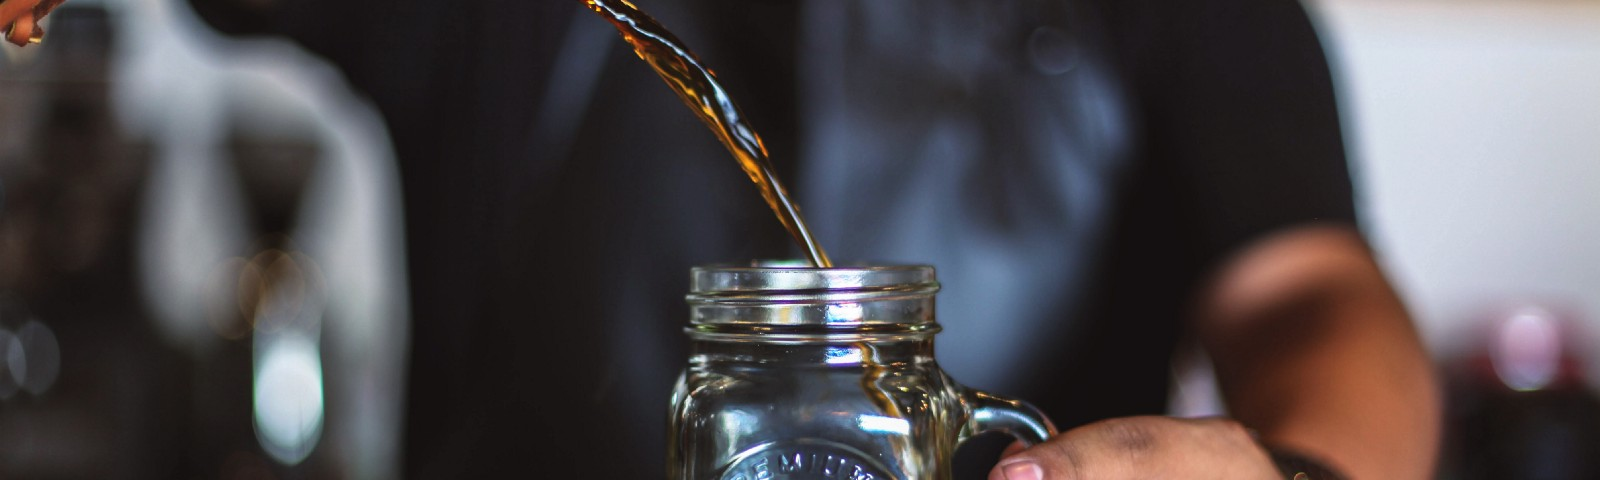 Pouring cold brew coffee into jar